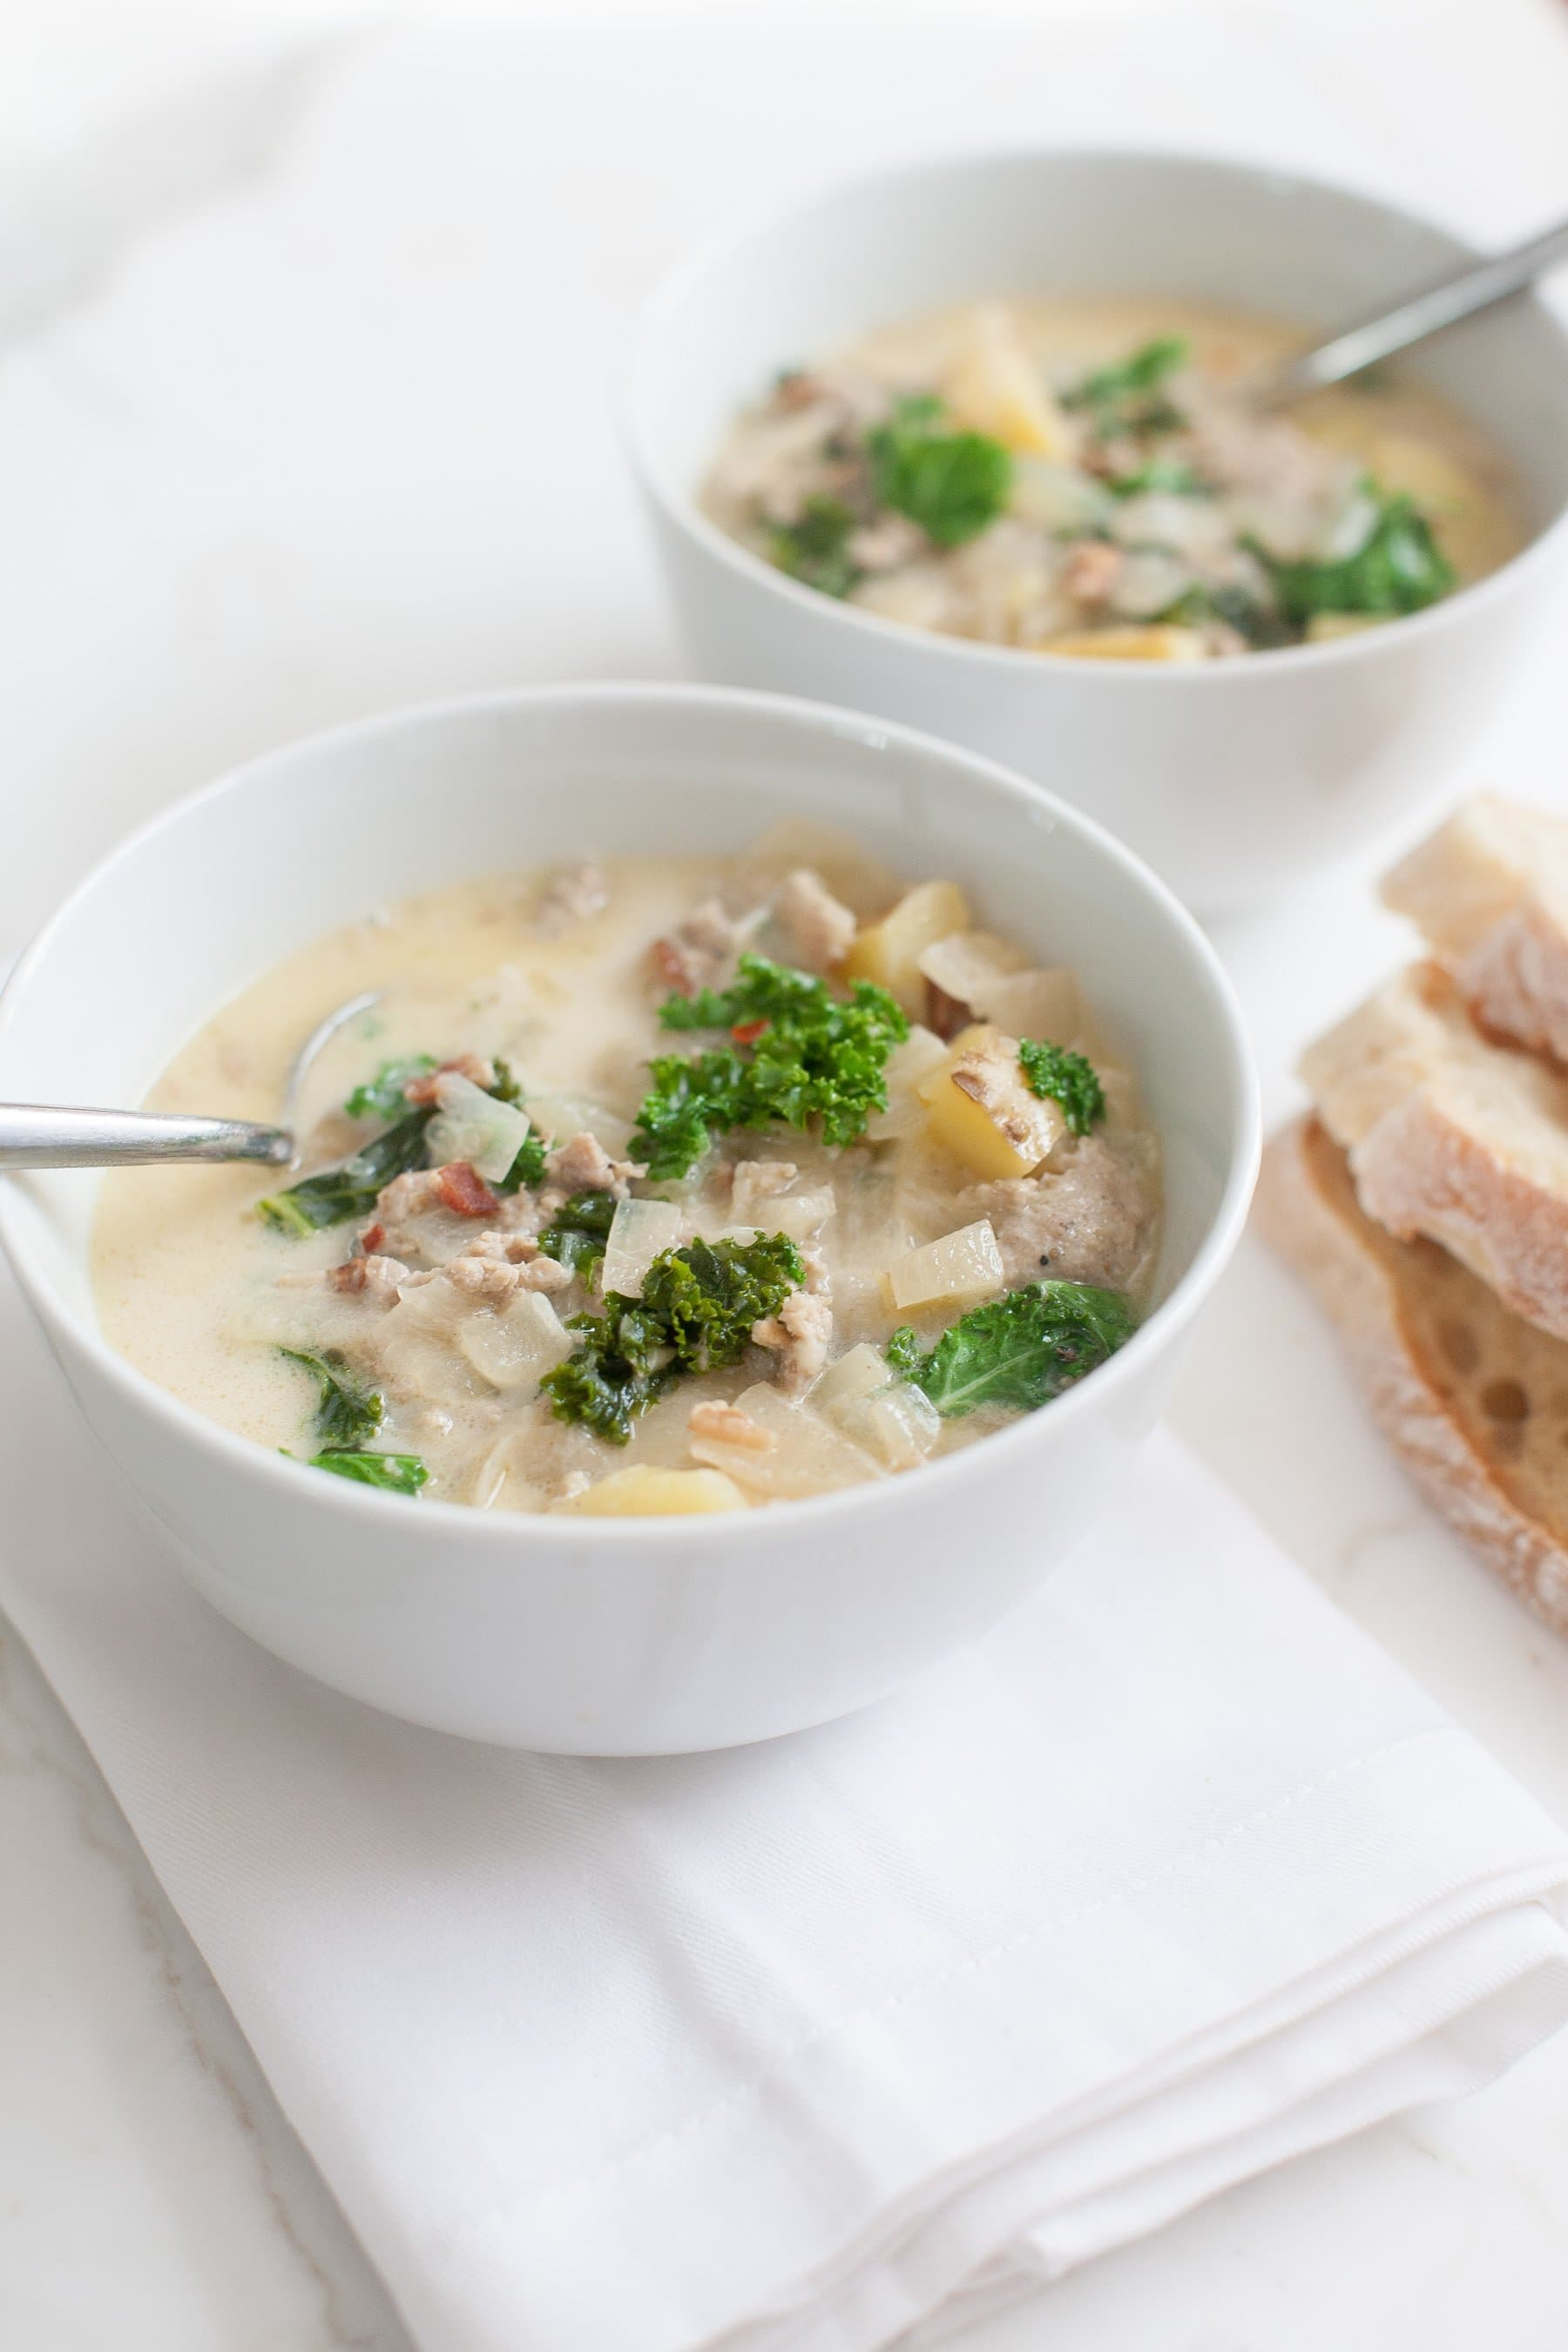 Two bowls of zuppa toscana with spoons inside on a marble counter with slices of bread.